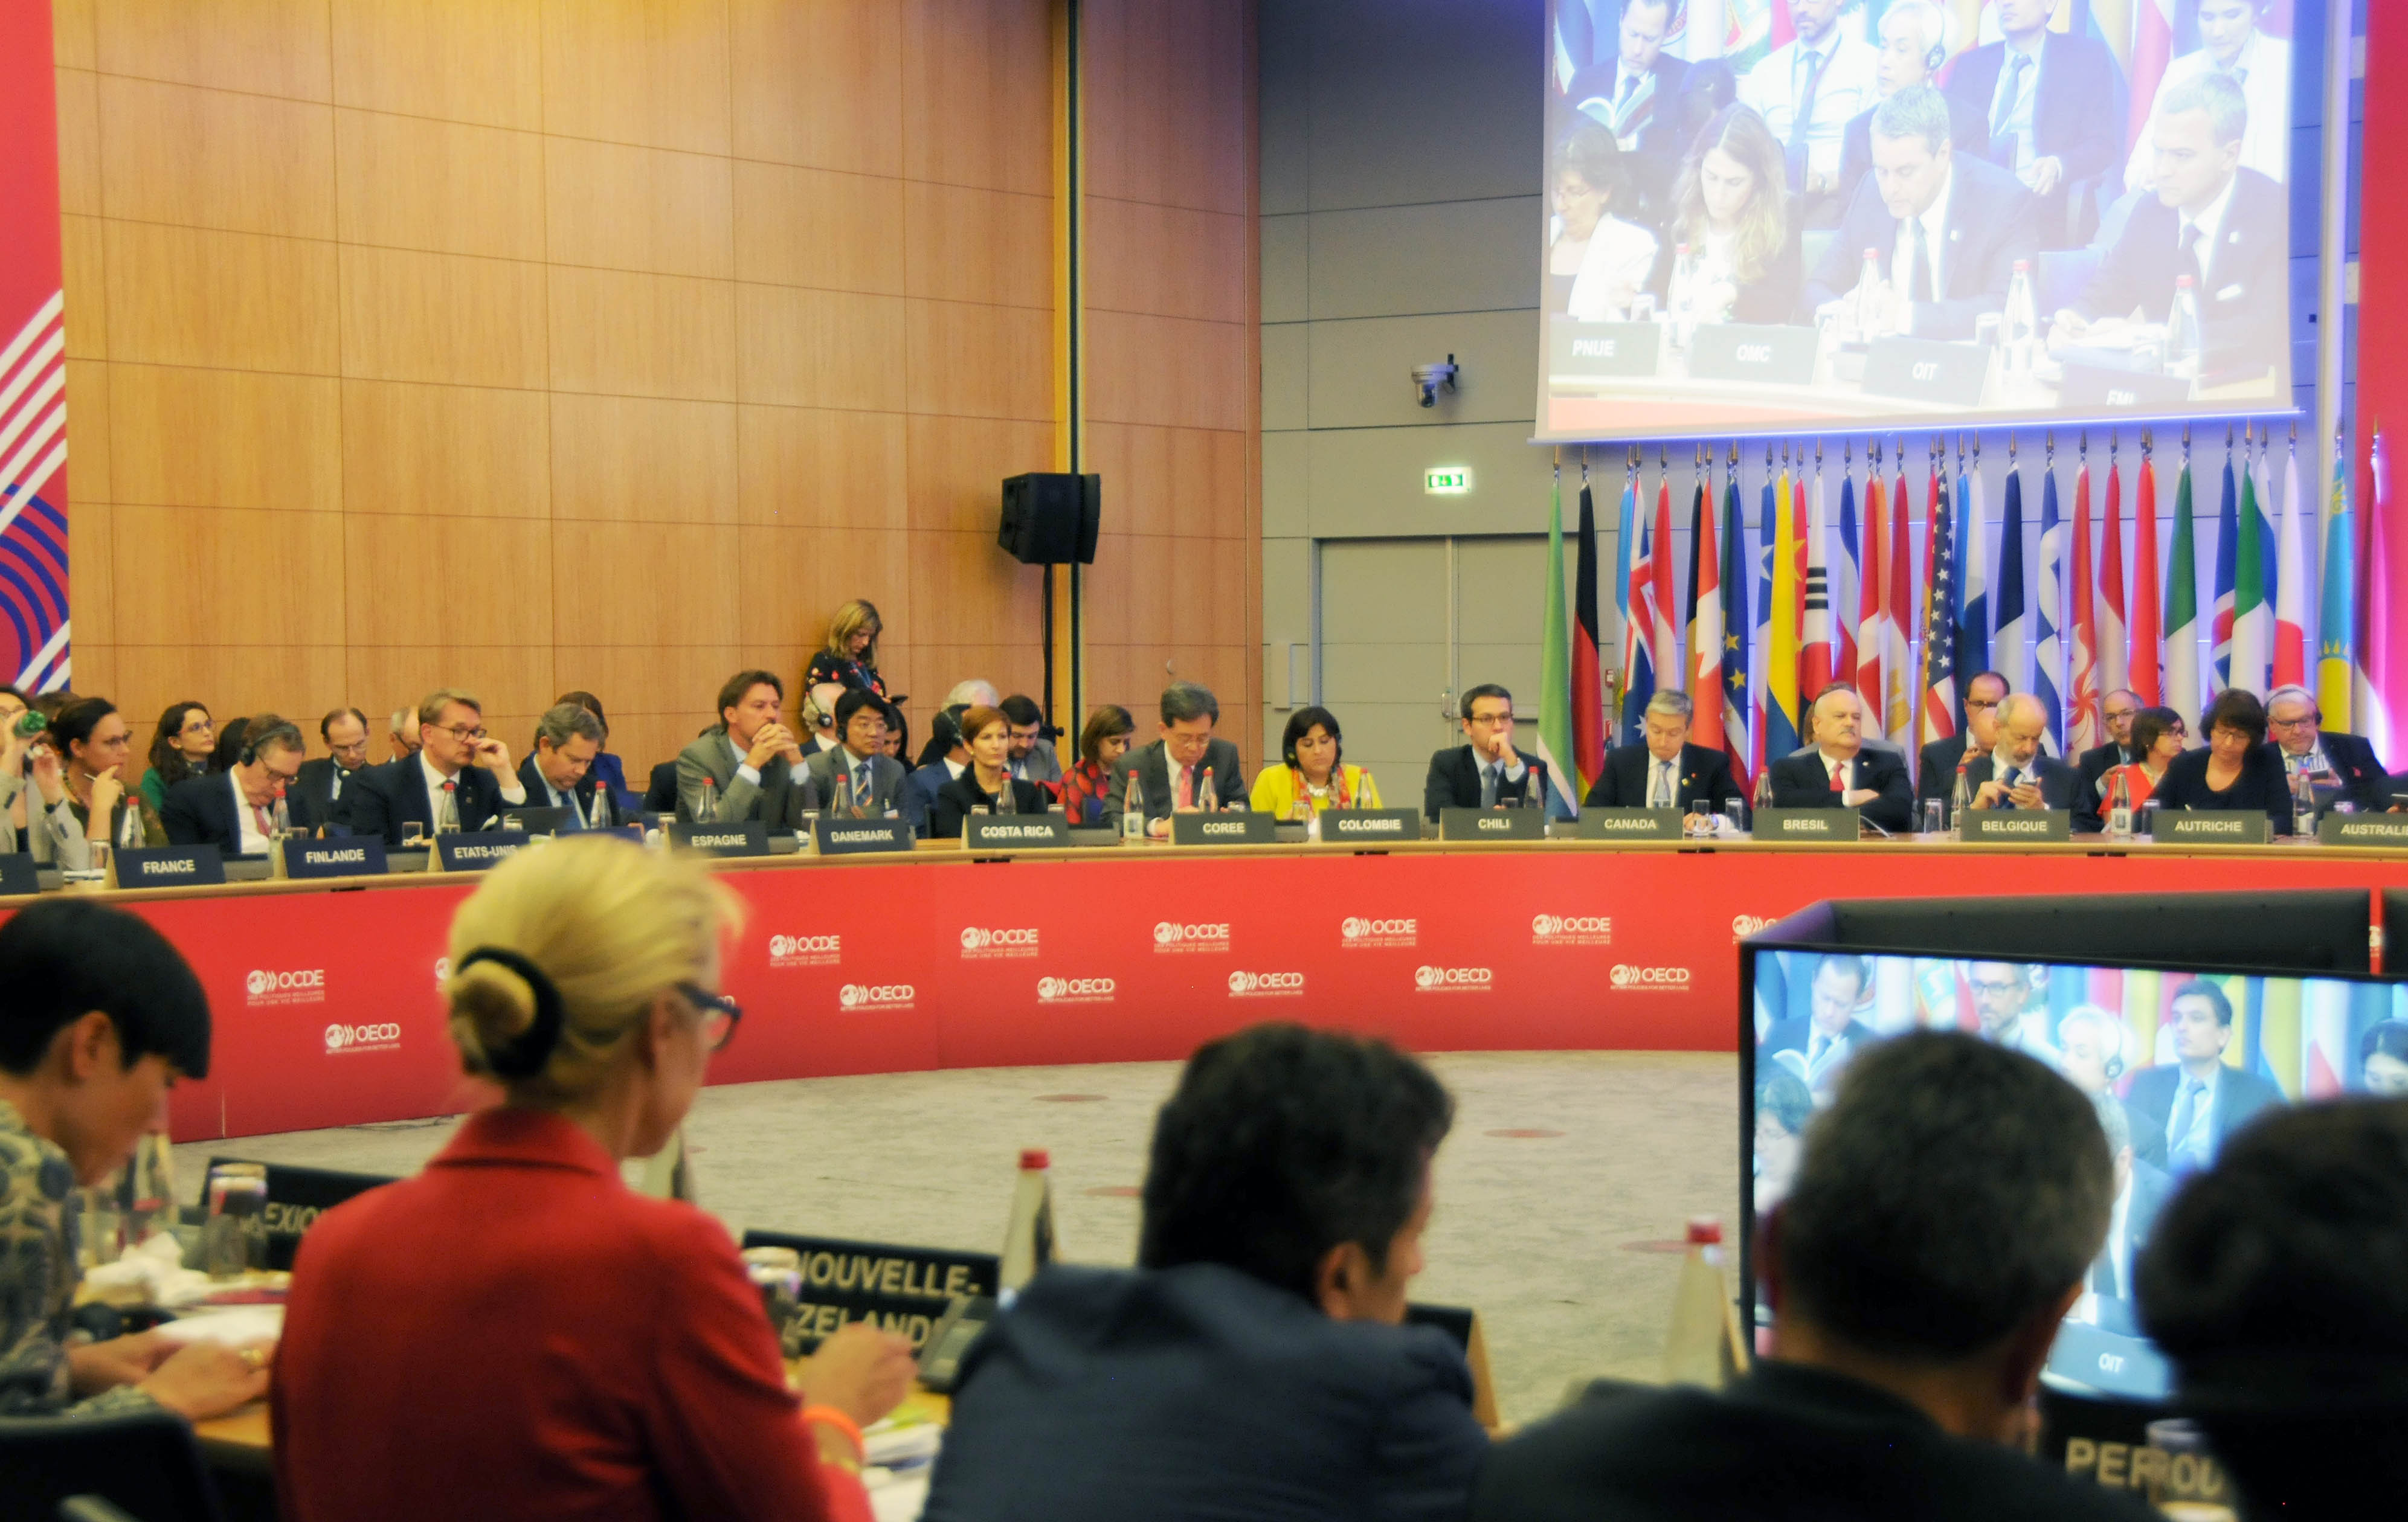 Trade Minister attends OECD Ministerial Council Meeting Image 0